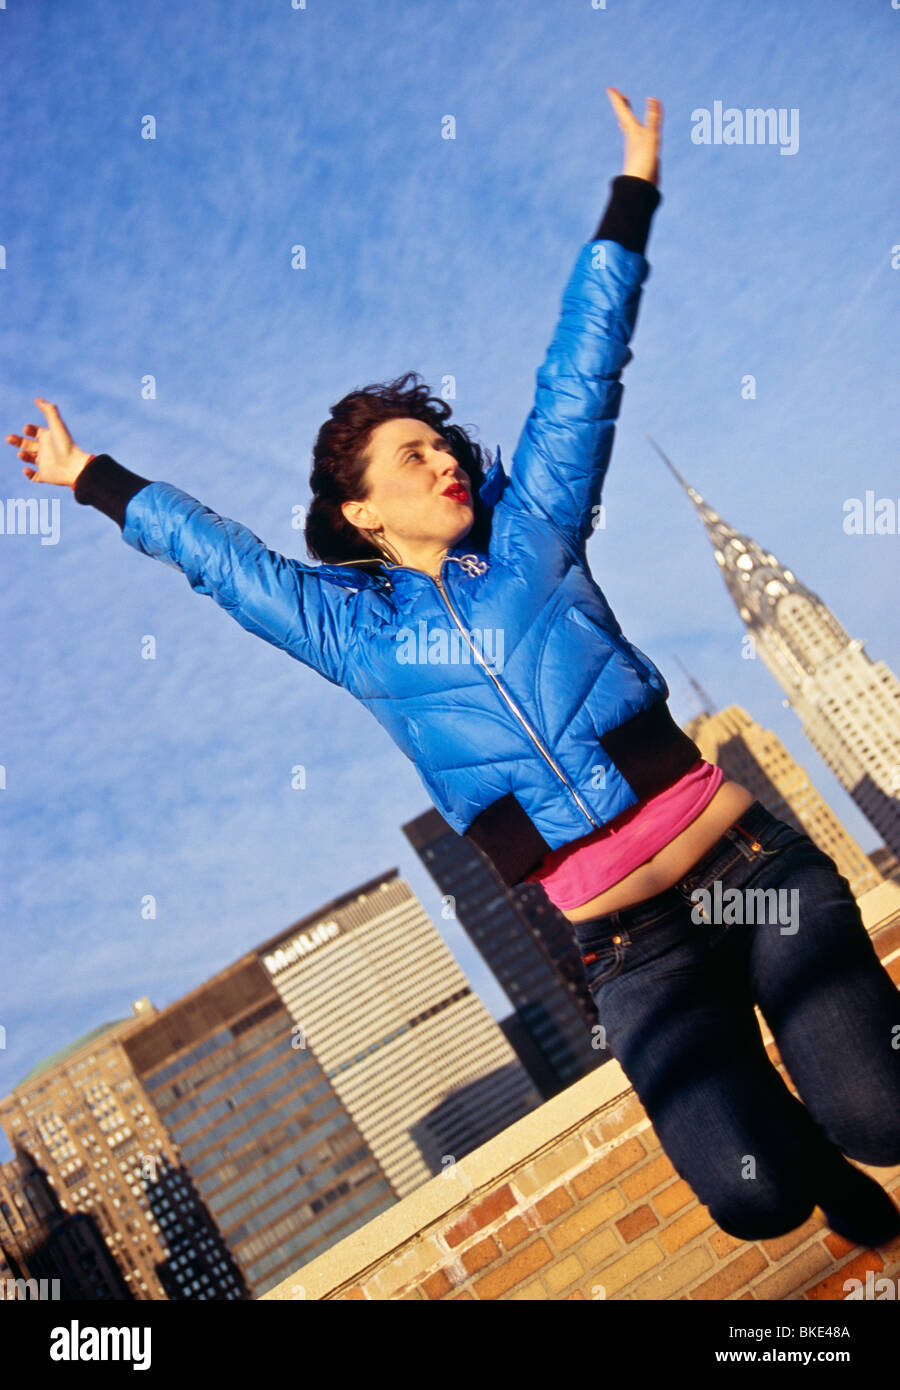 'Young Woman Jumping for Joy ' - Stock Image